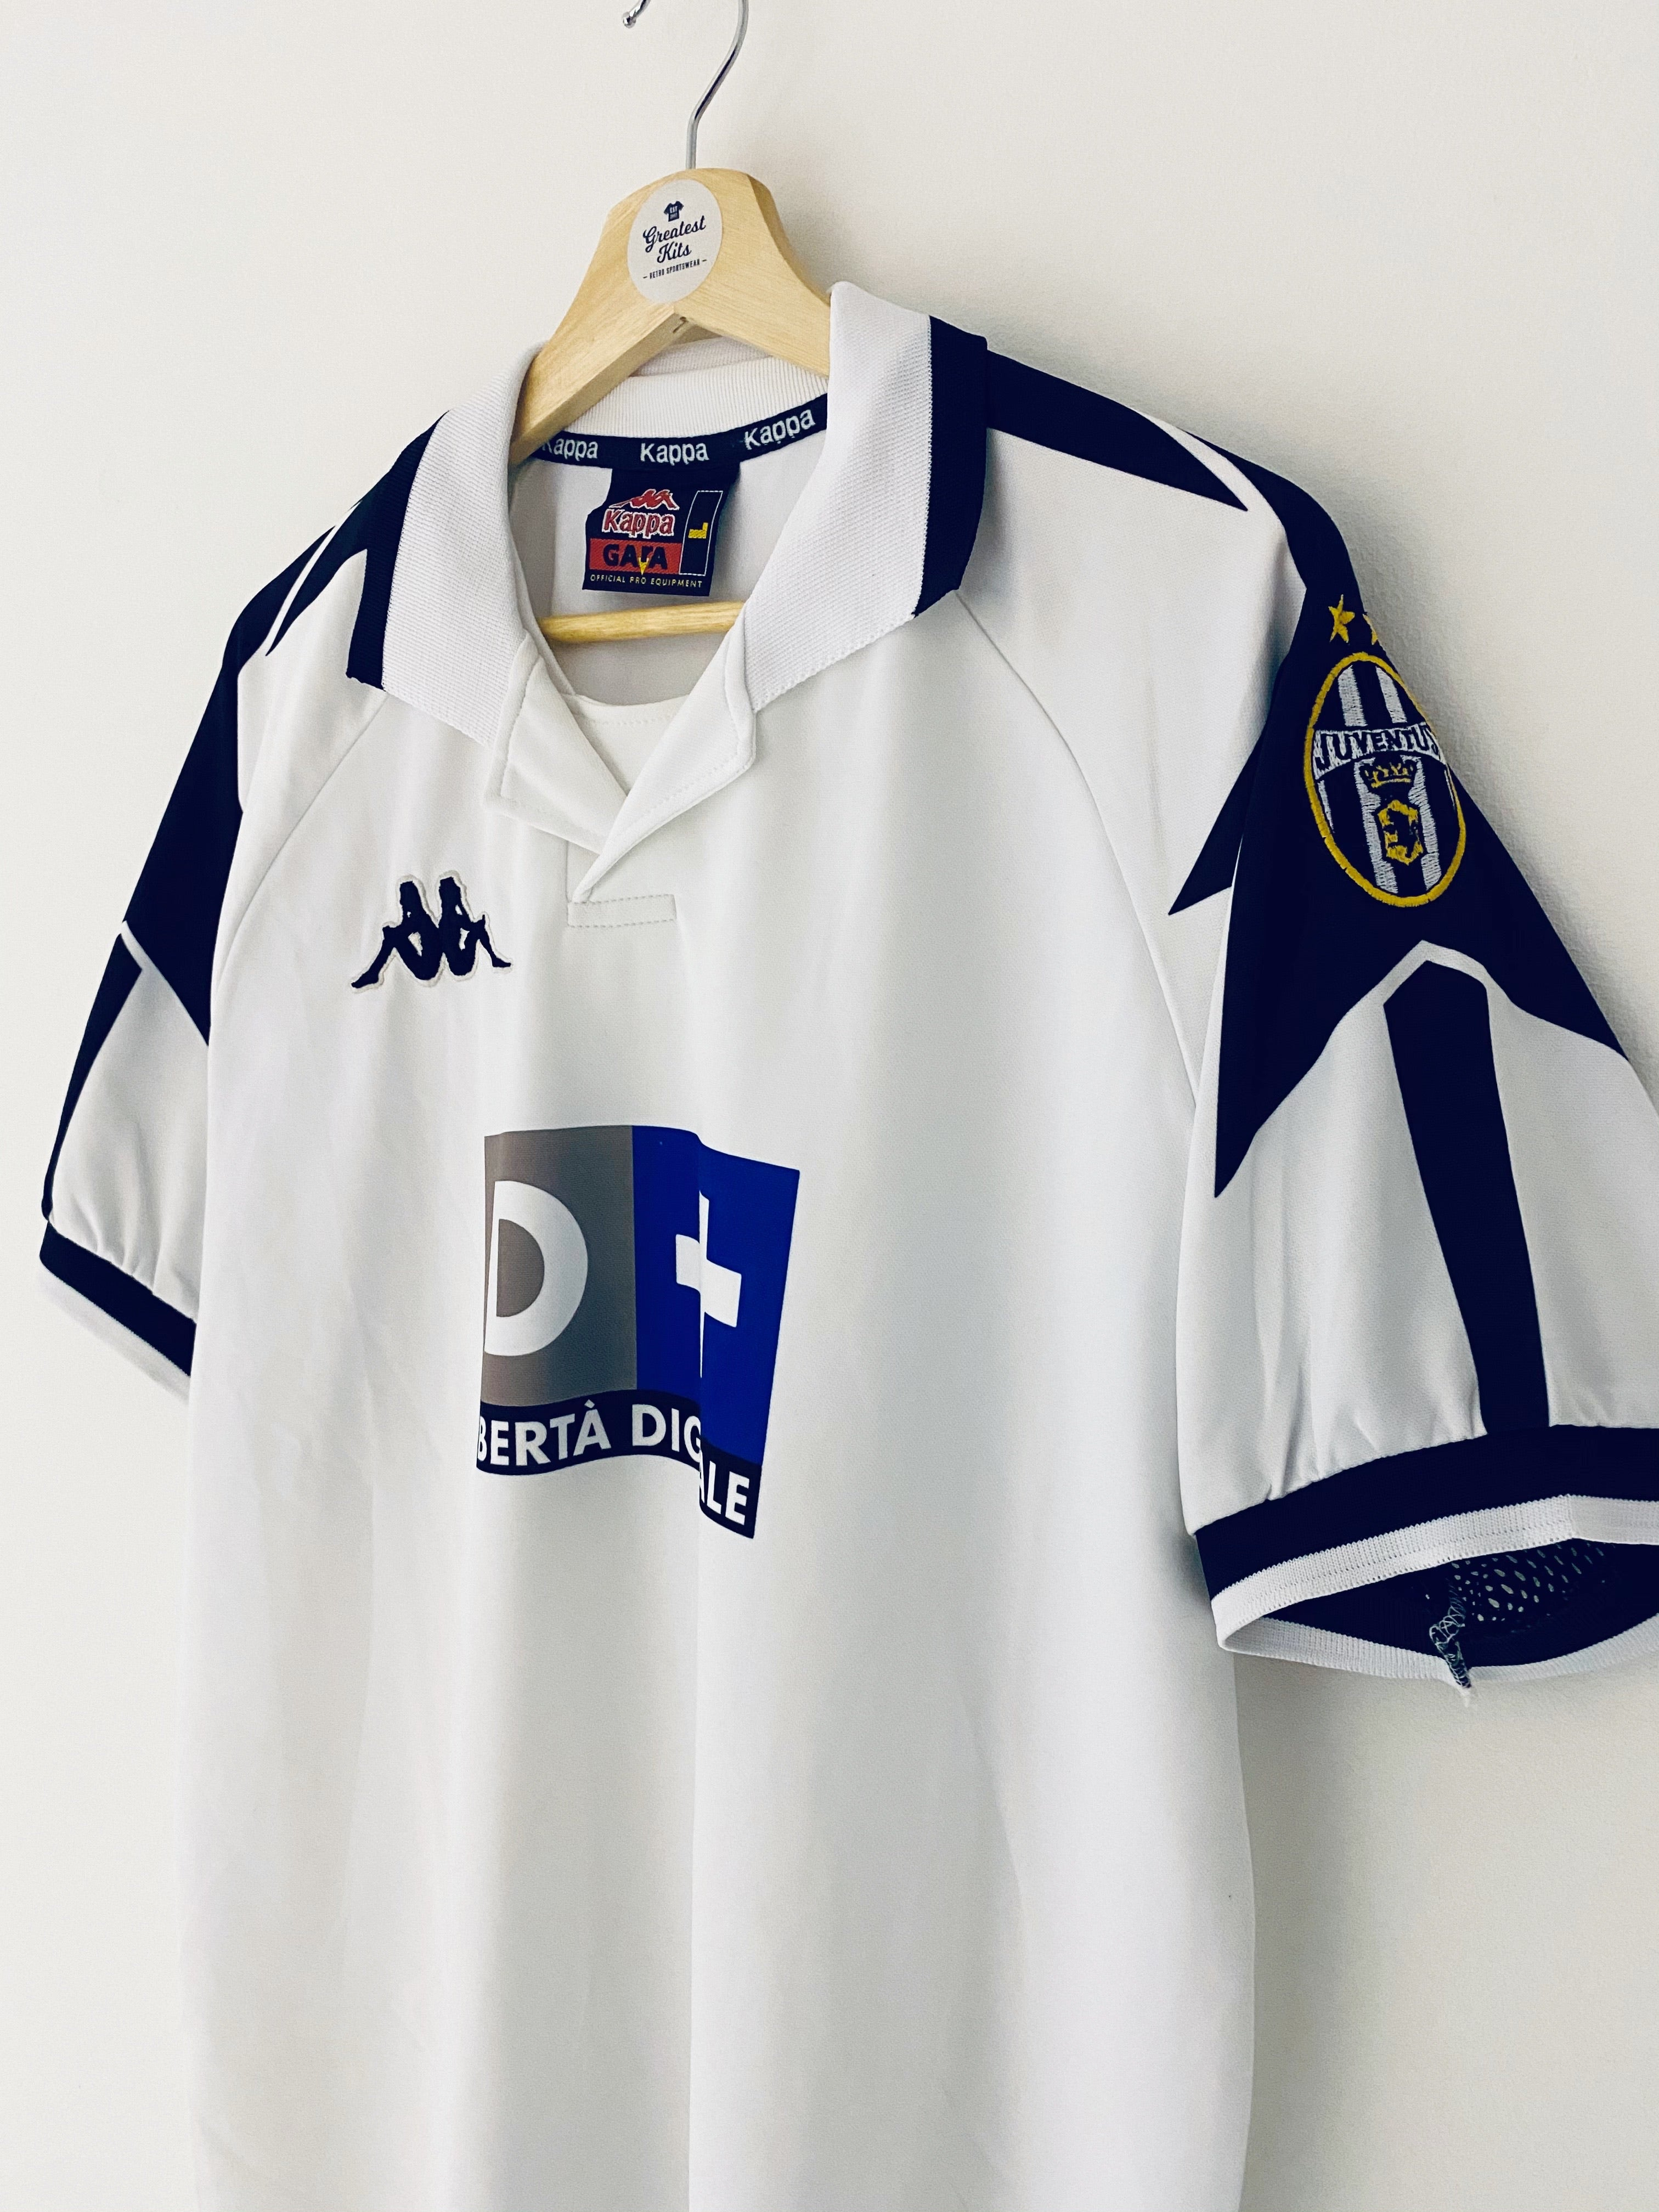 1998/99 Juventus Away Shirt (L) 8/10